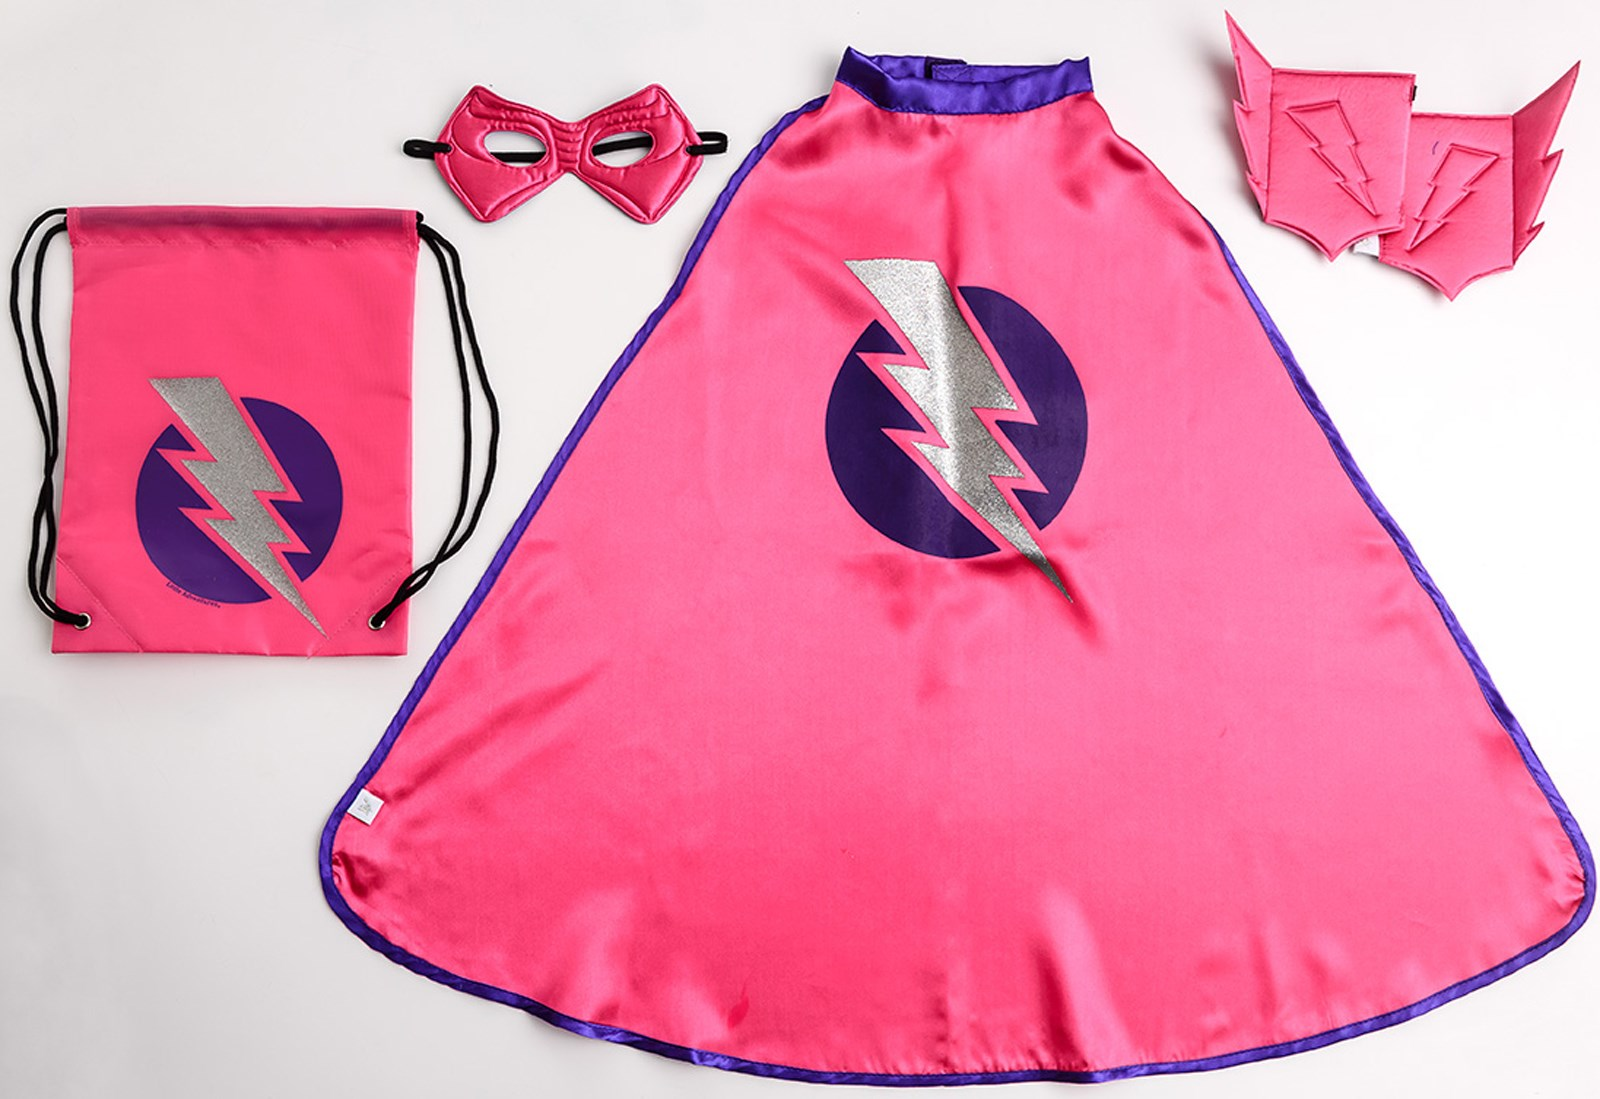 Superhero Drawstring Backpack Dress Up Set For Girls | BuyCostumes.com